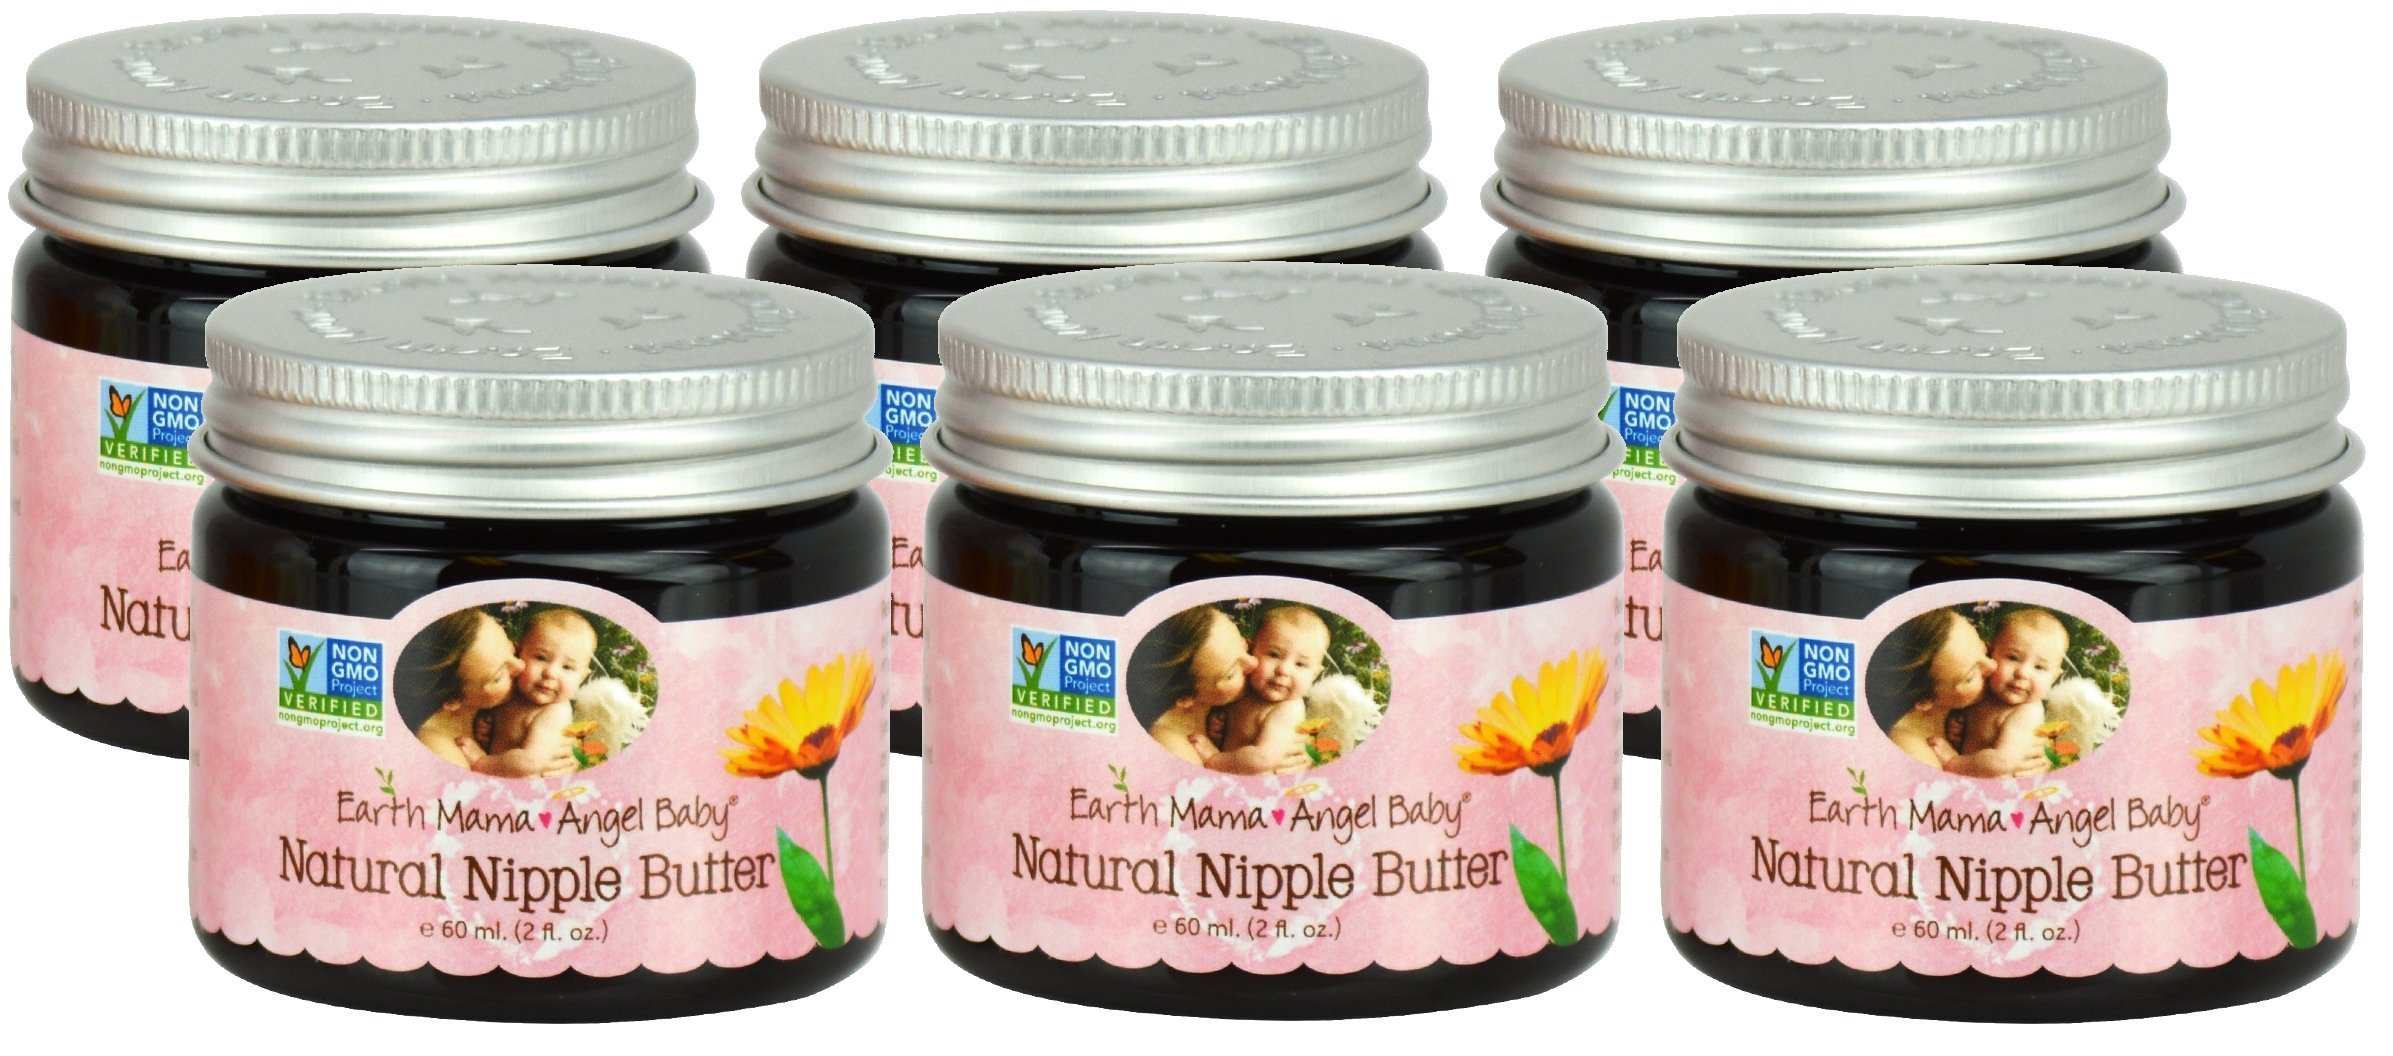 Bulk Saver Pack 6x2 oz : Earth Mama Angel Baby Natural Nipple Butter